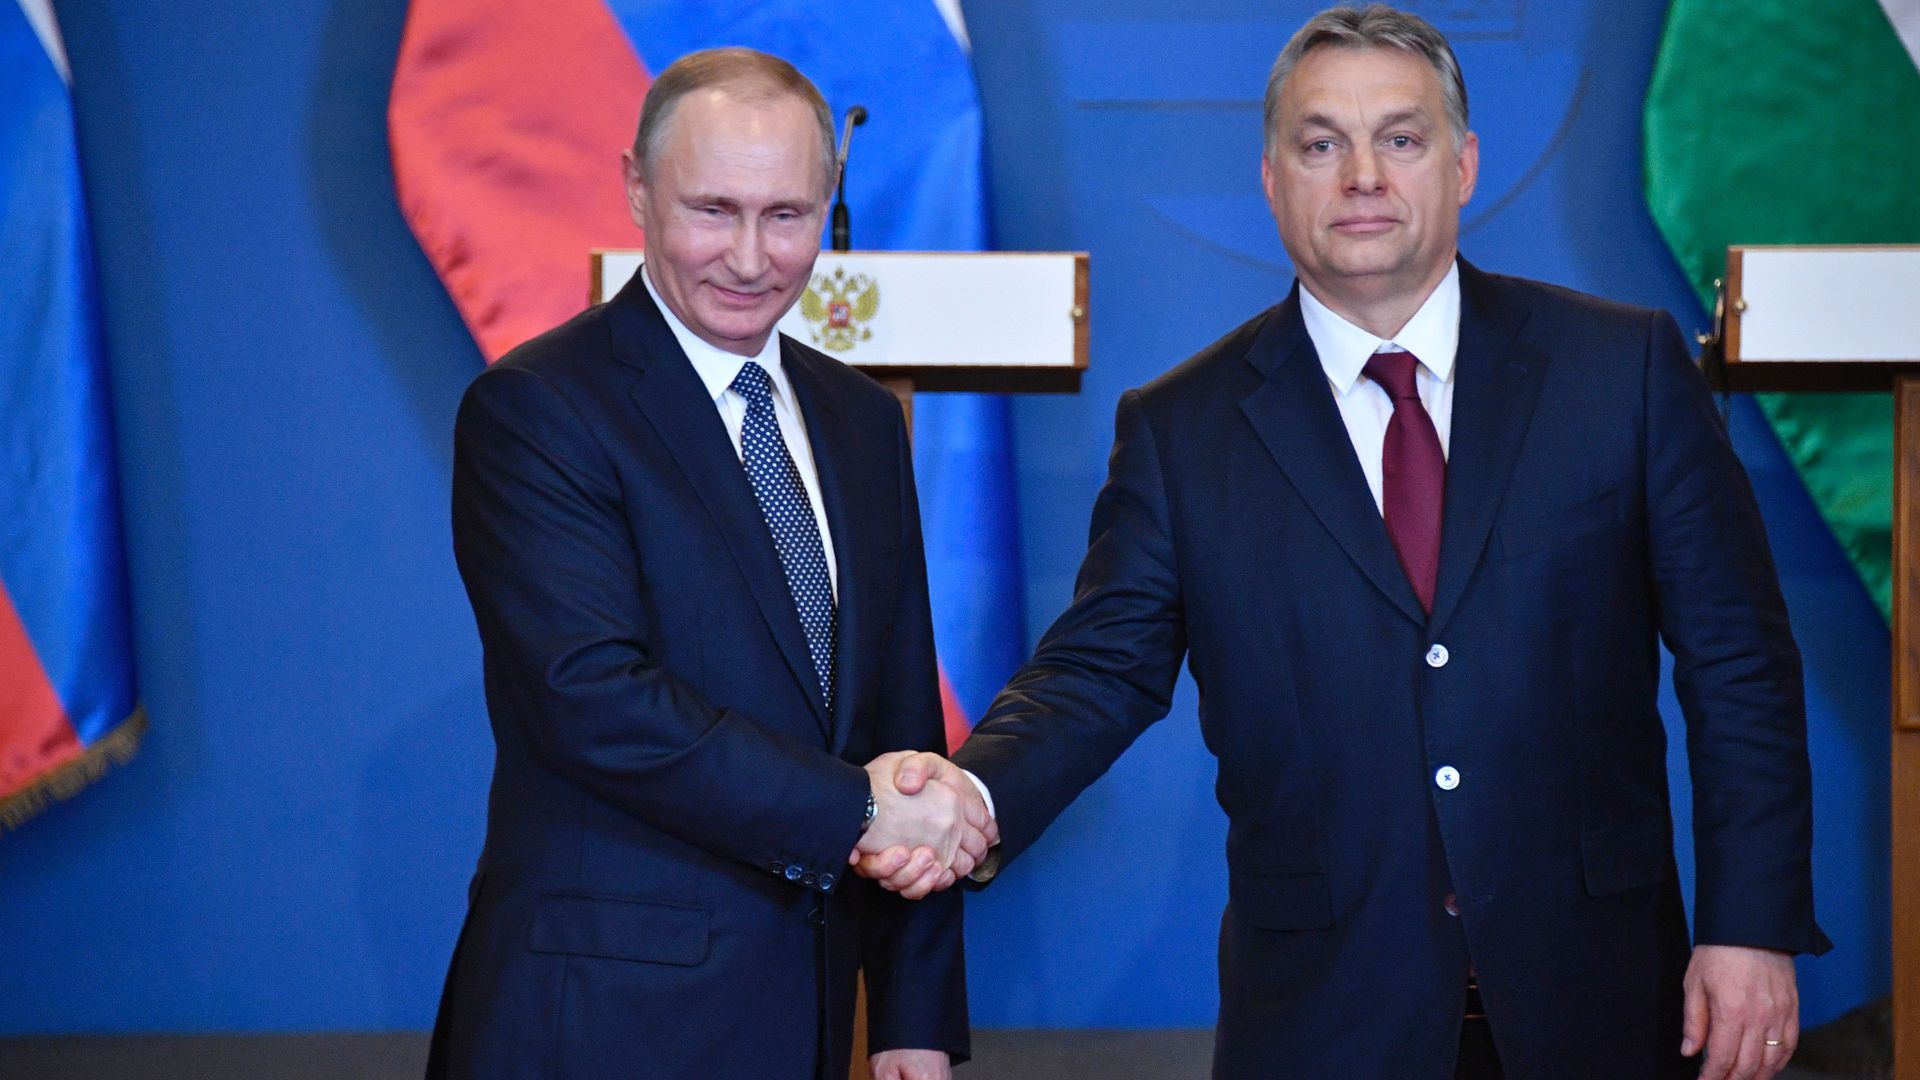 Russian President Vladimir Putin (L) and Hungarian Prime Minister Viktor Orban during a joint press conference on February 2, 2017 in Budapest.